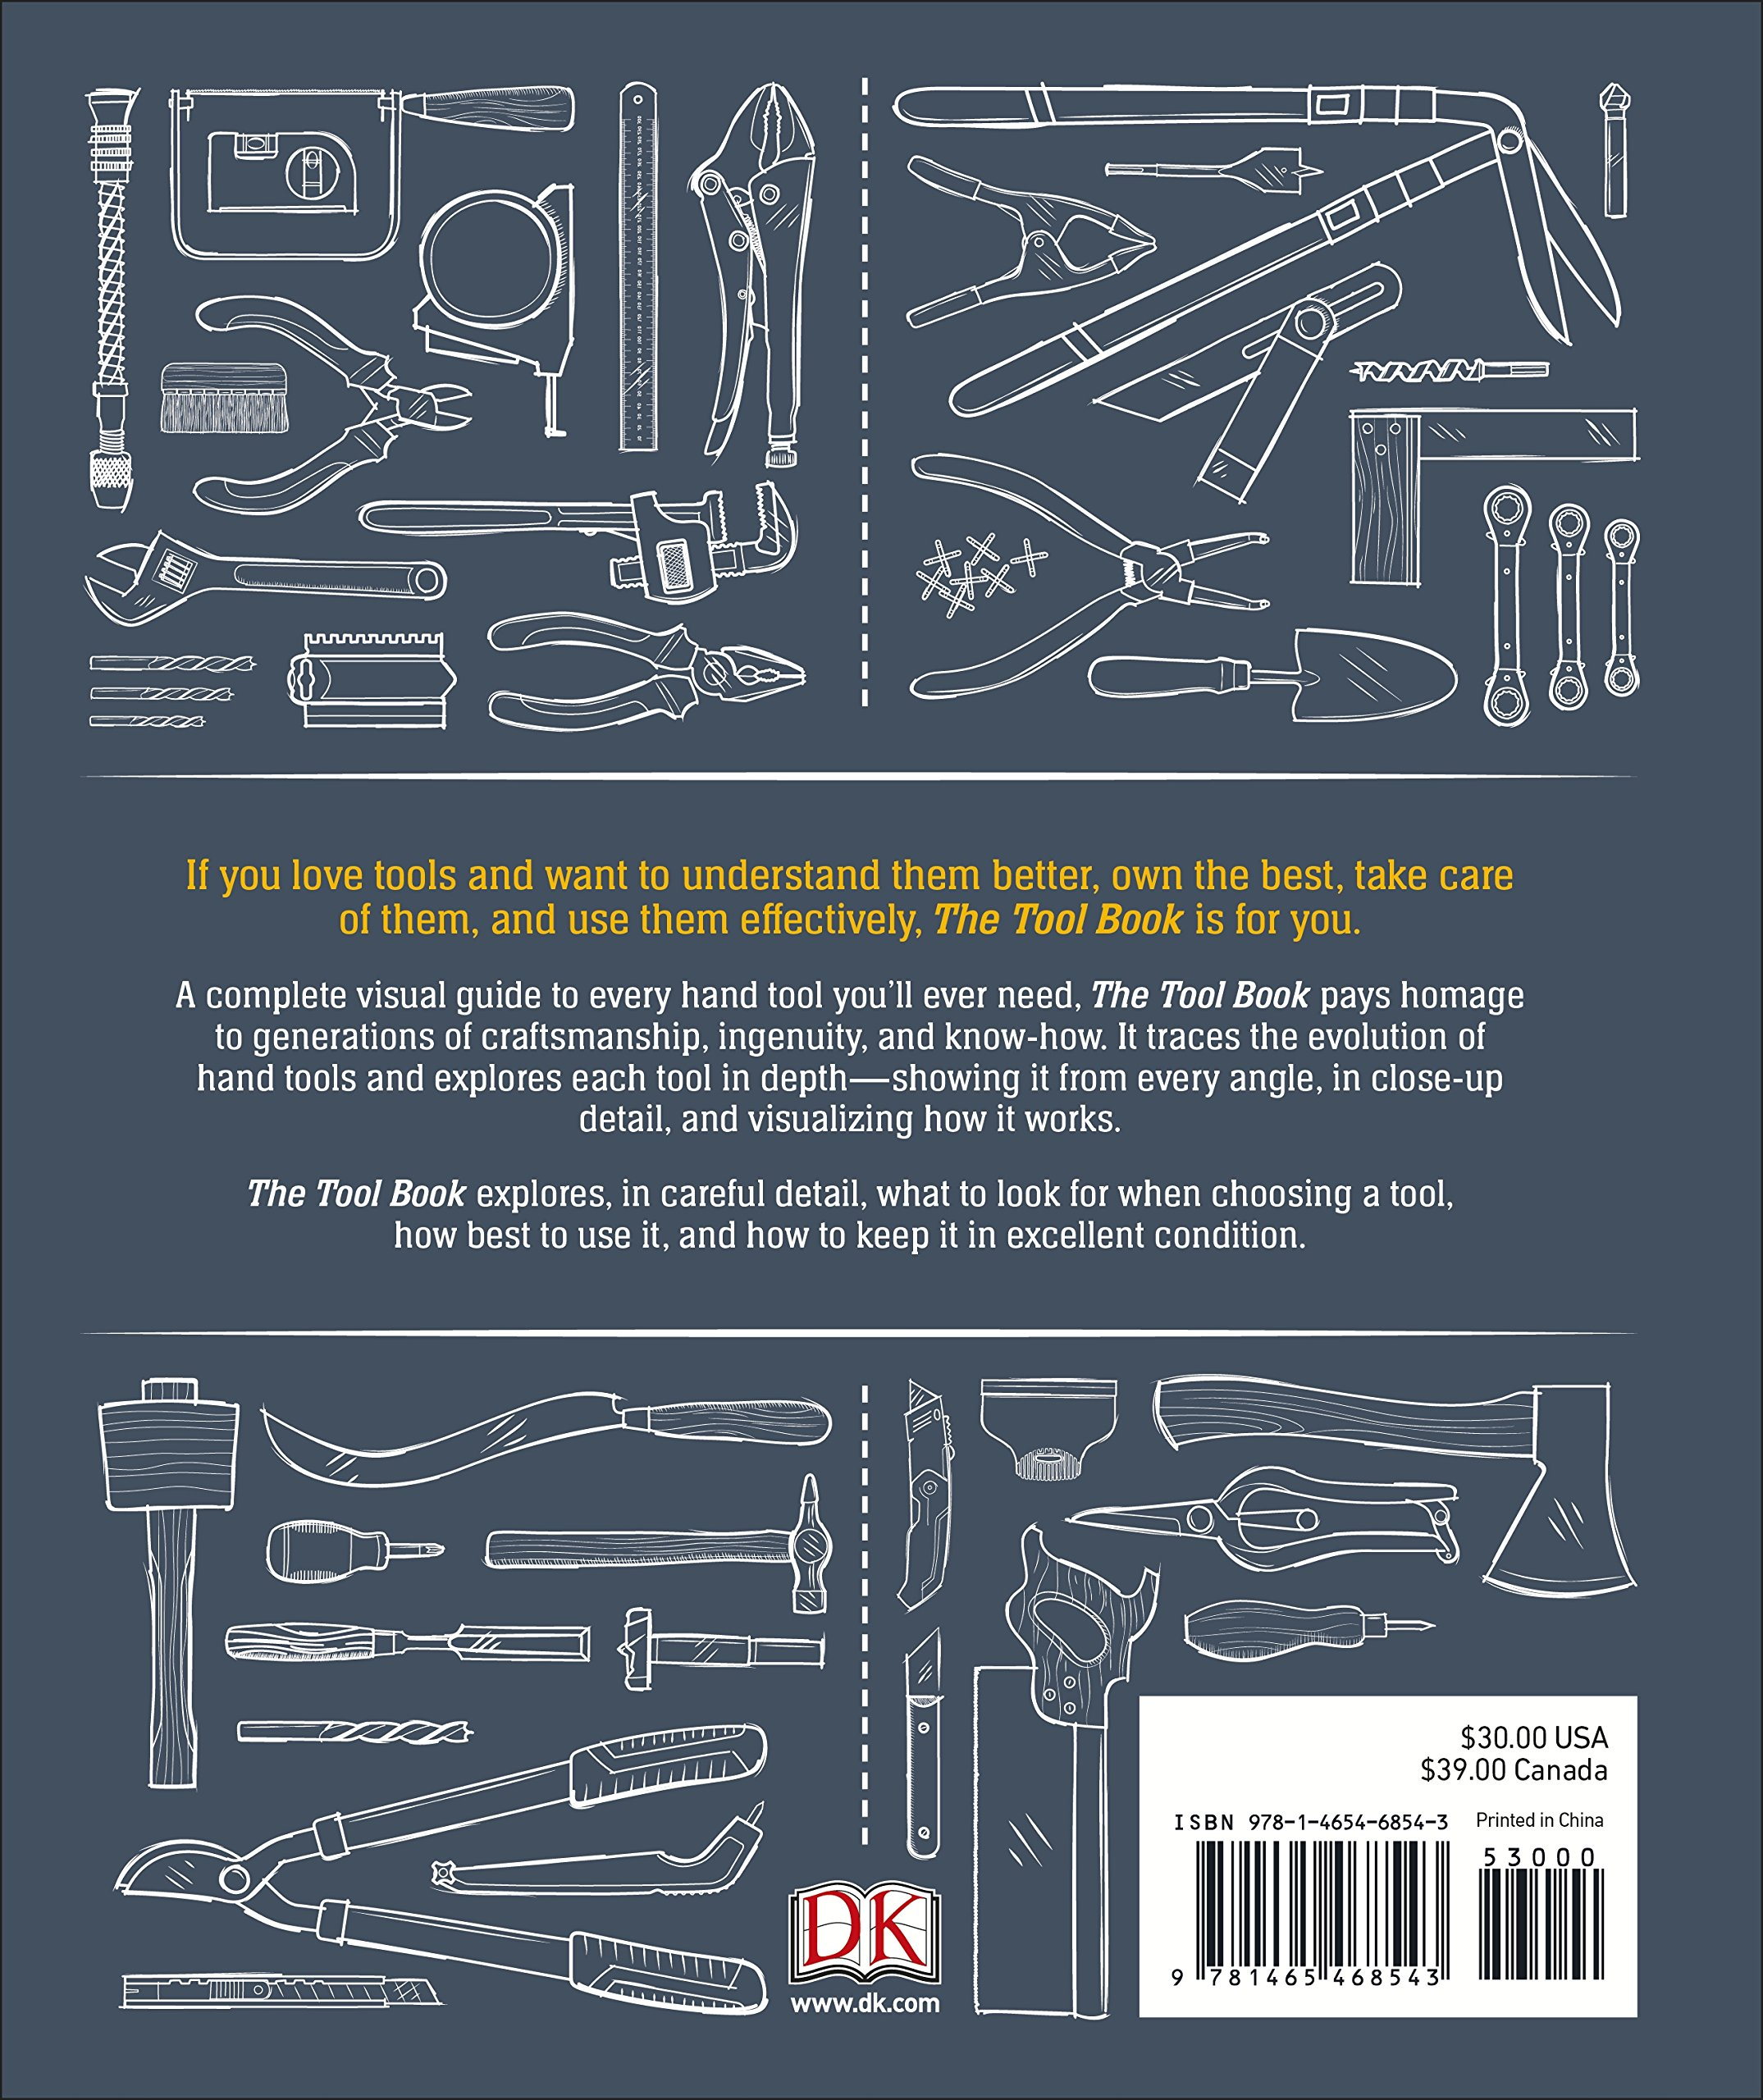 The Tool Book A Lovers Guide To Over 200 Hand Tools Amazon Diagram Free Download Wiring Schematic Phil Davy Nick Offerman 9781465468543 Books